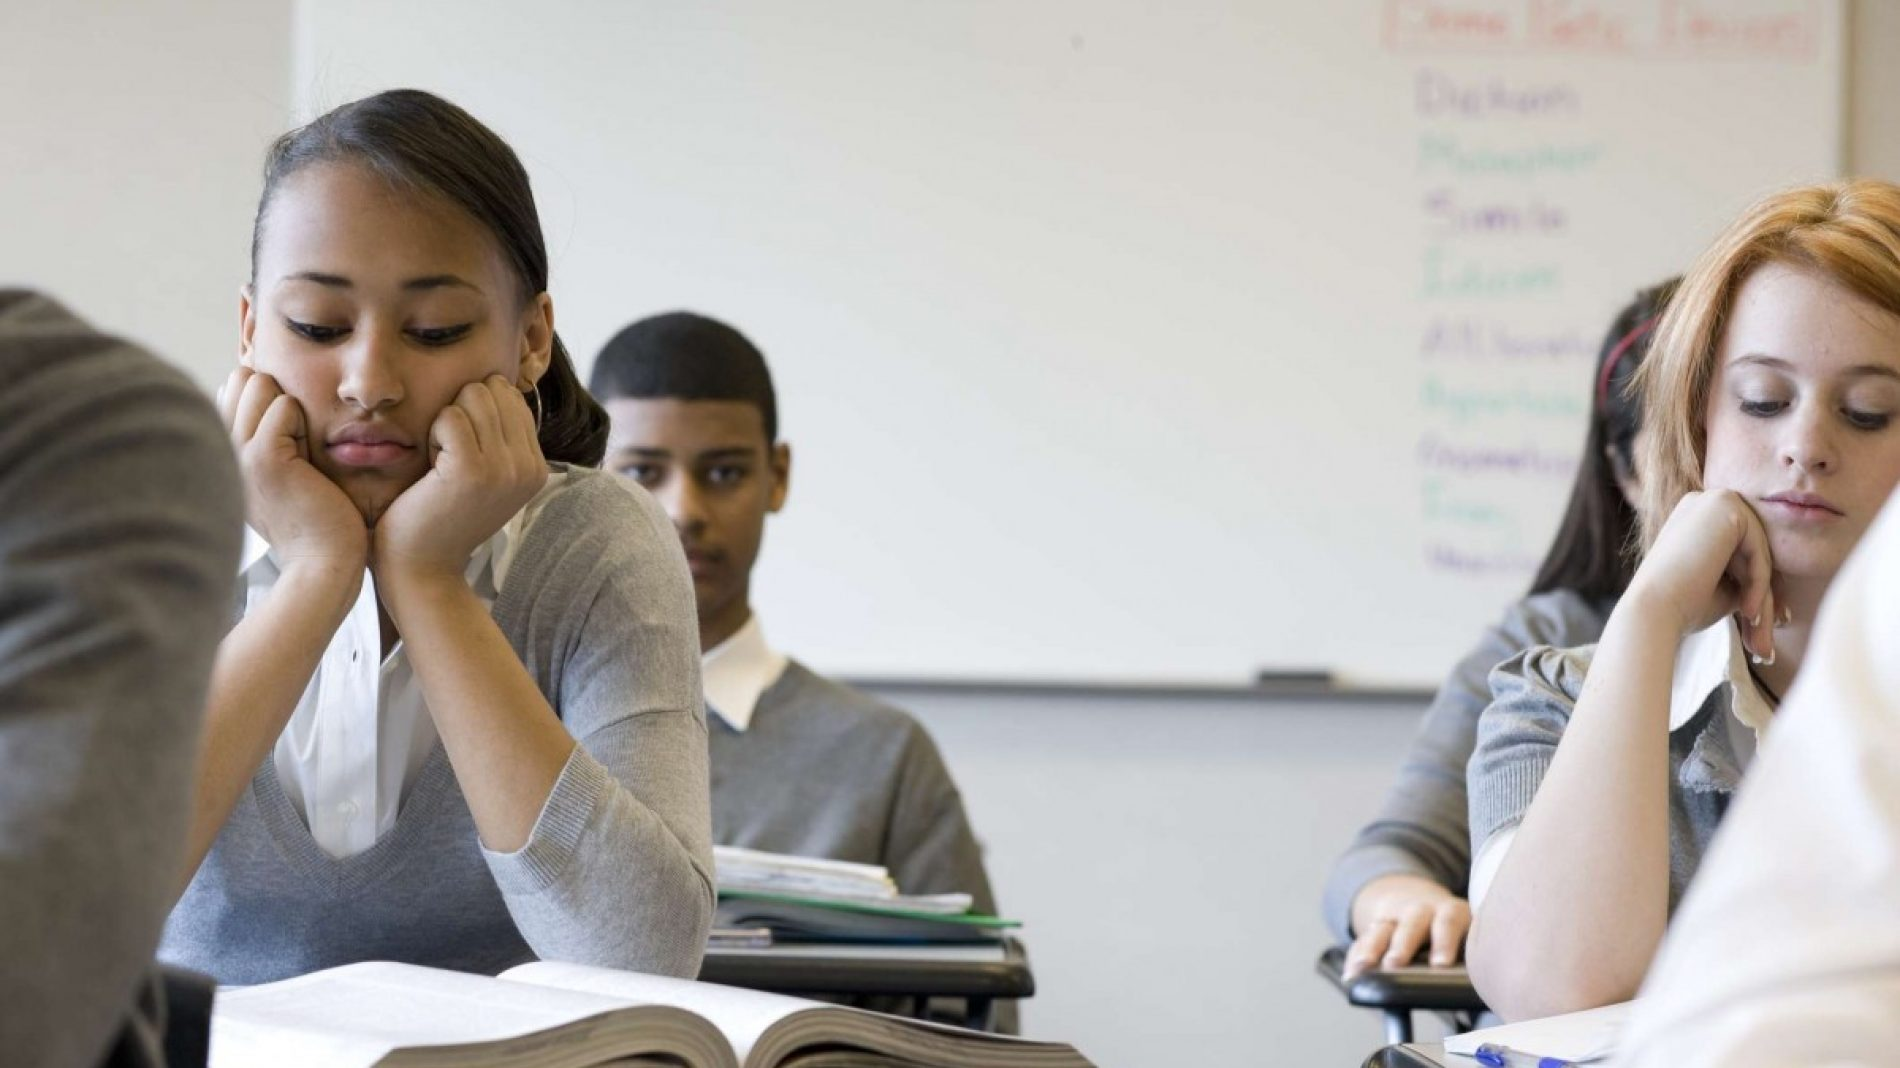 Students looking bored in class